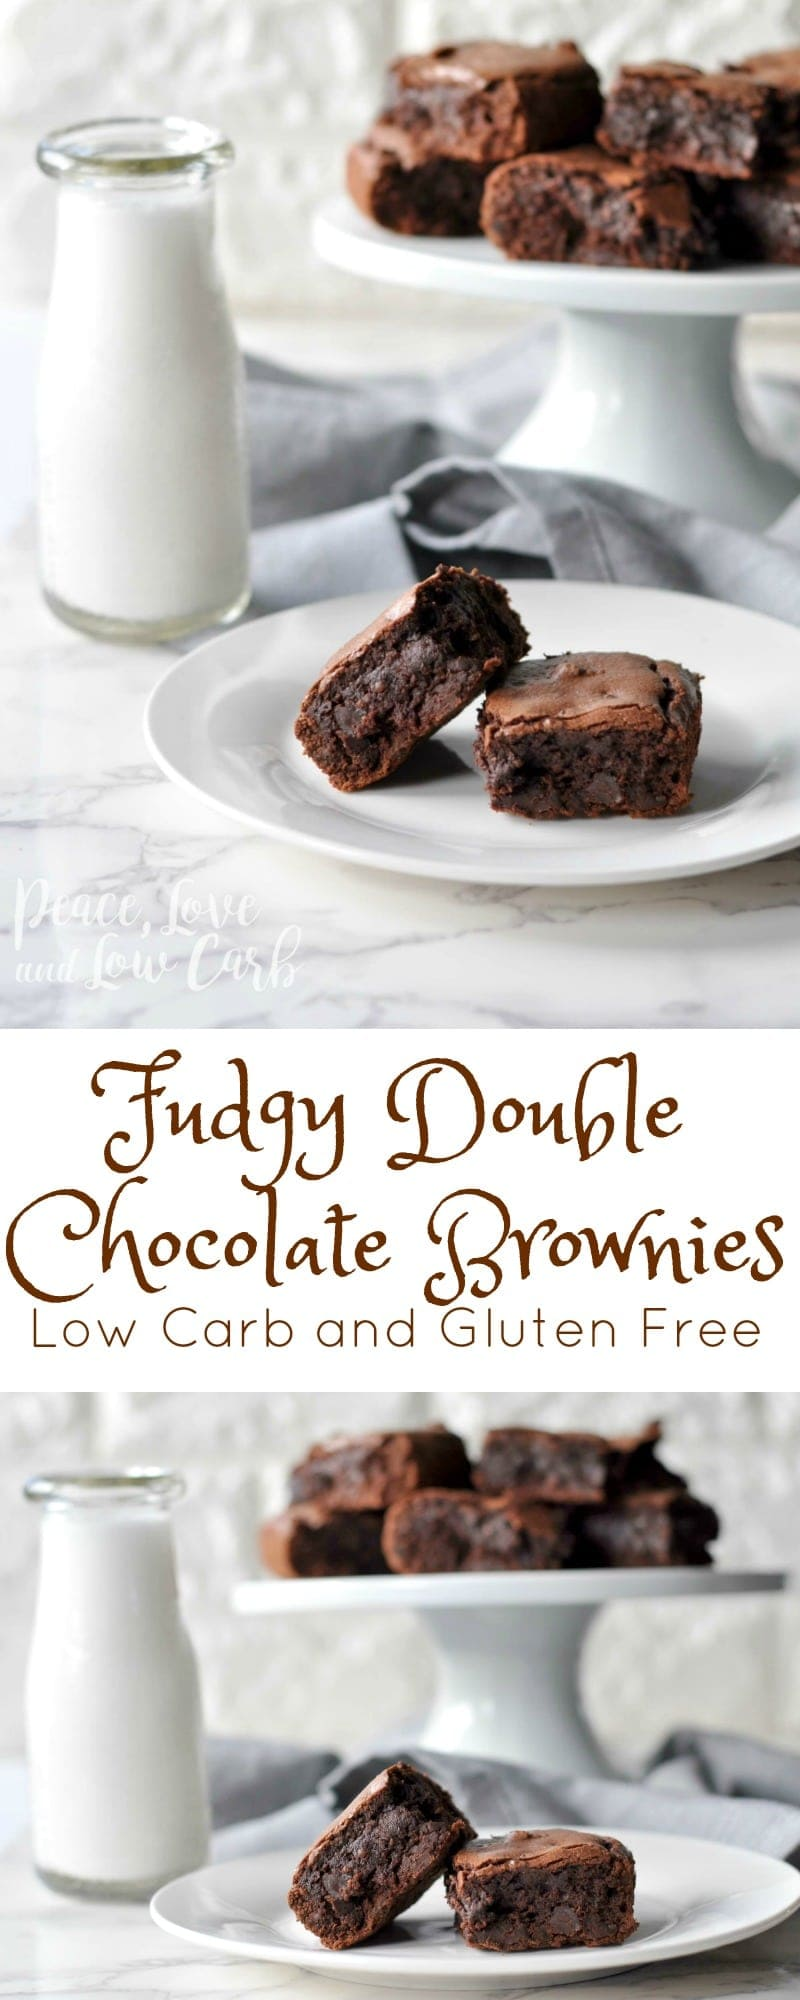 Fudgy Double Chocolate Keto Brownies | Peace Love and Low Carb